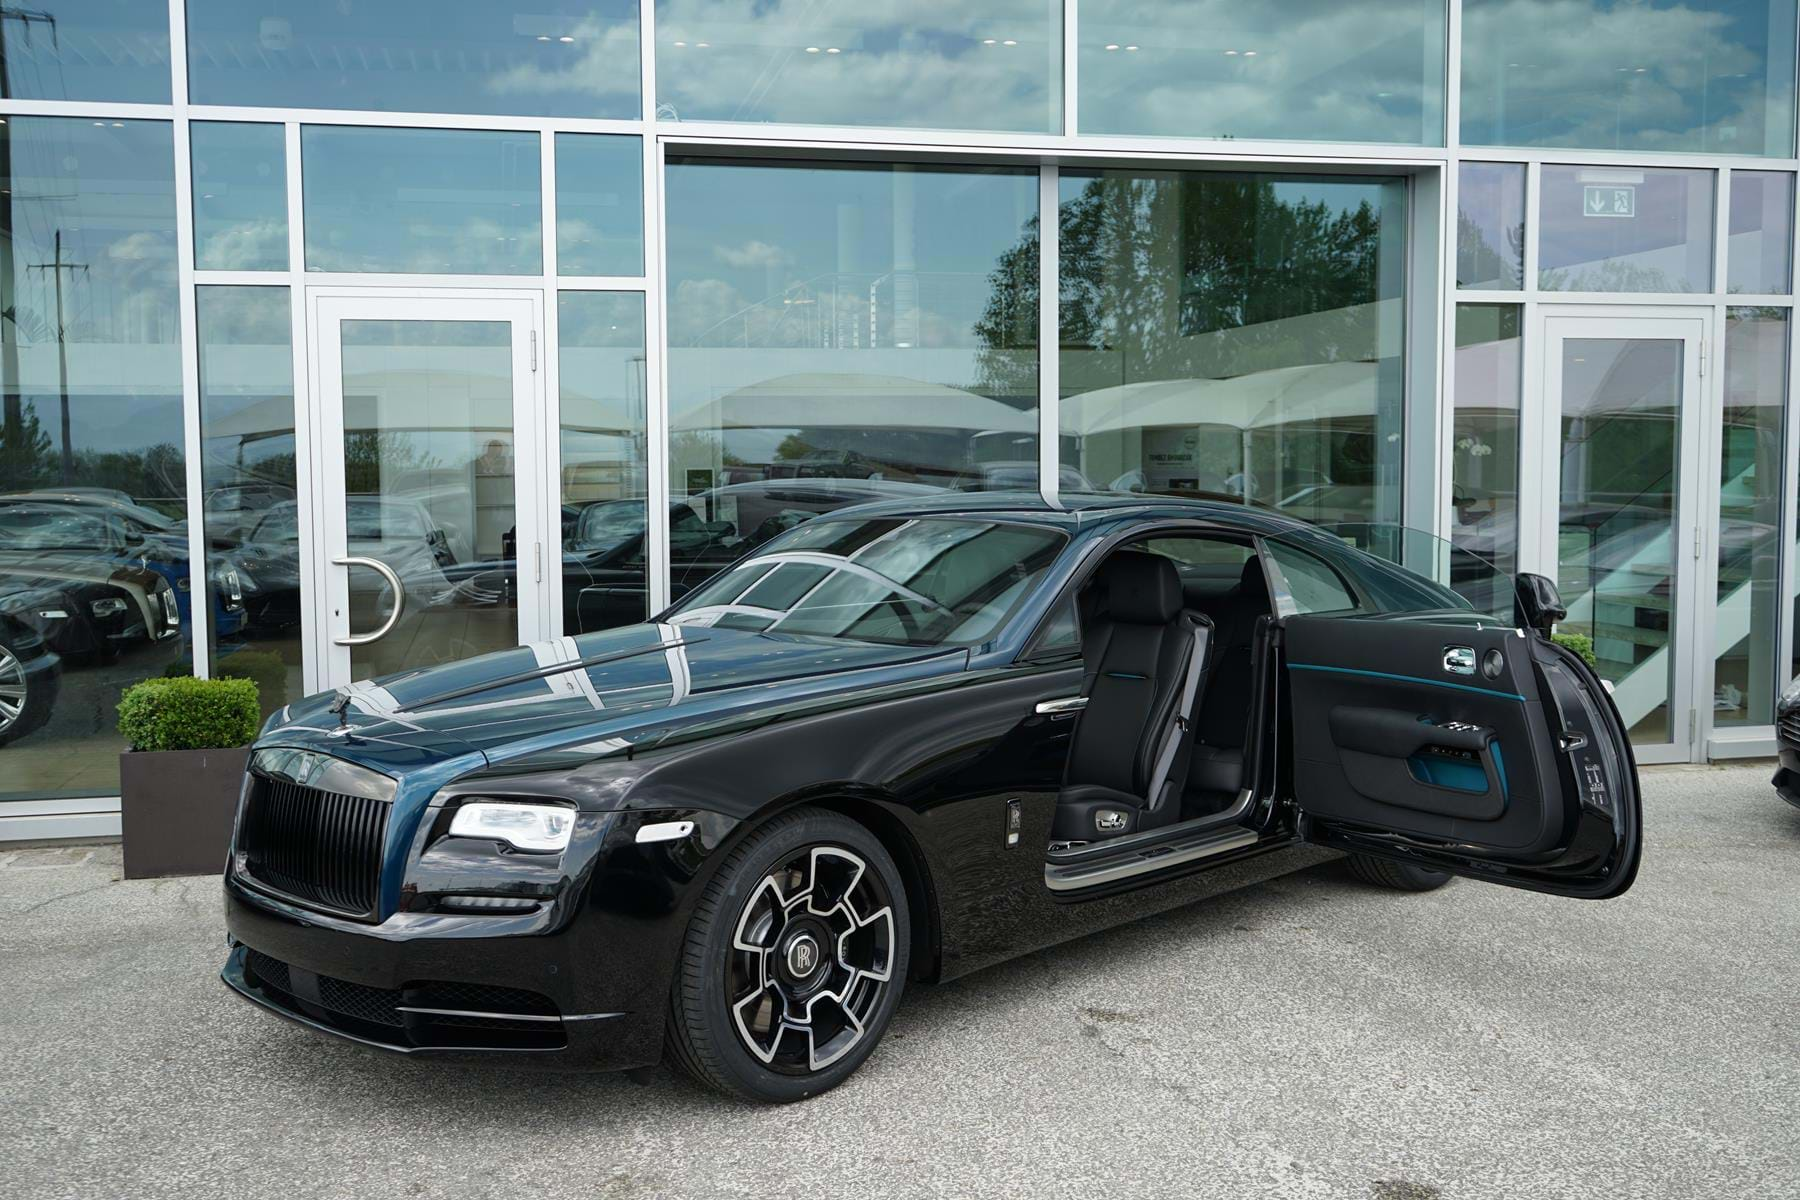 Rolls Royce Wraith Black Badge Adamas Collection One Of Fourty Pegasus Automotive Switzerland For Sale On Luxurypulse